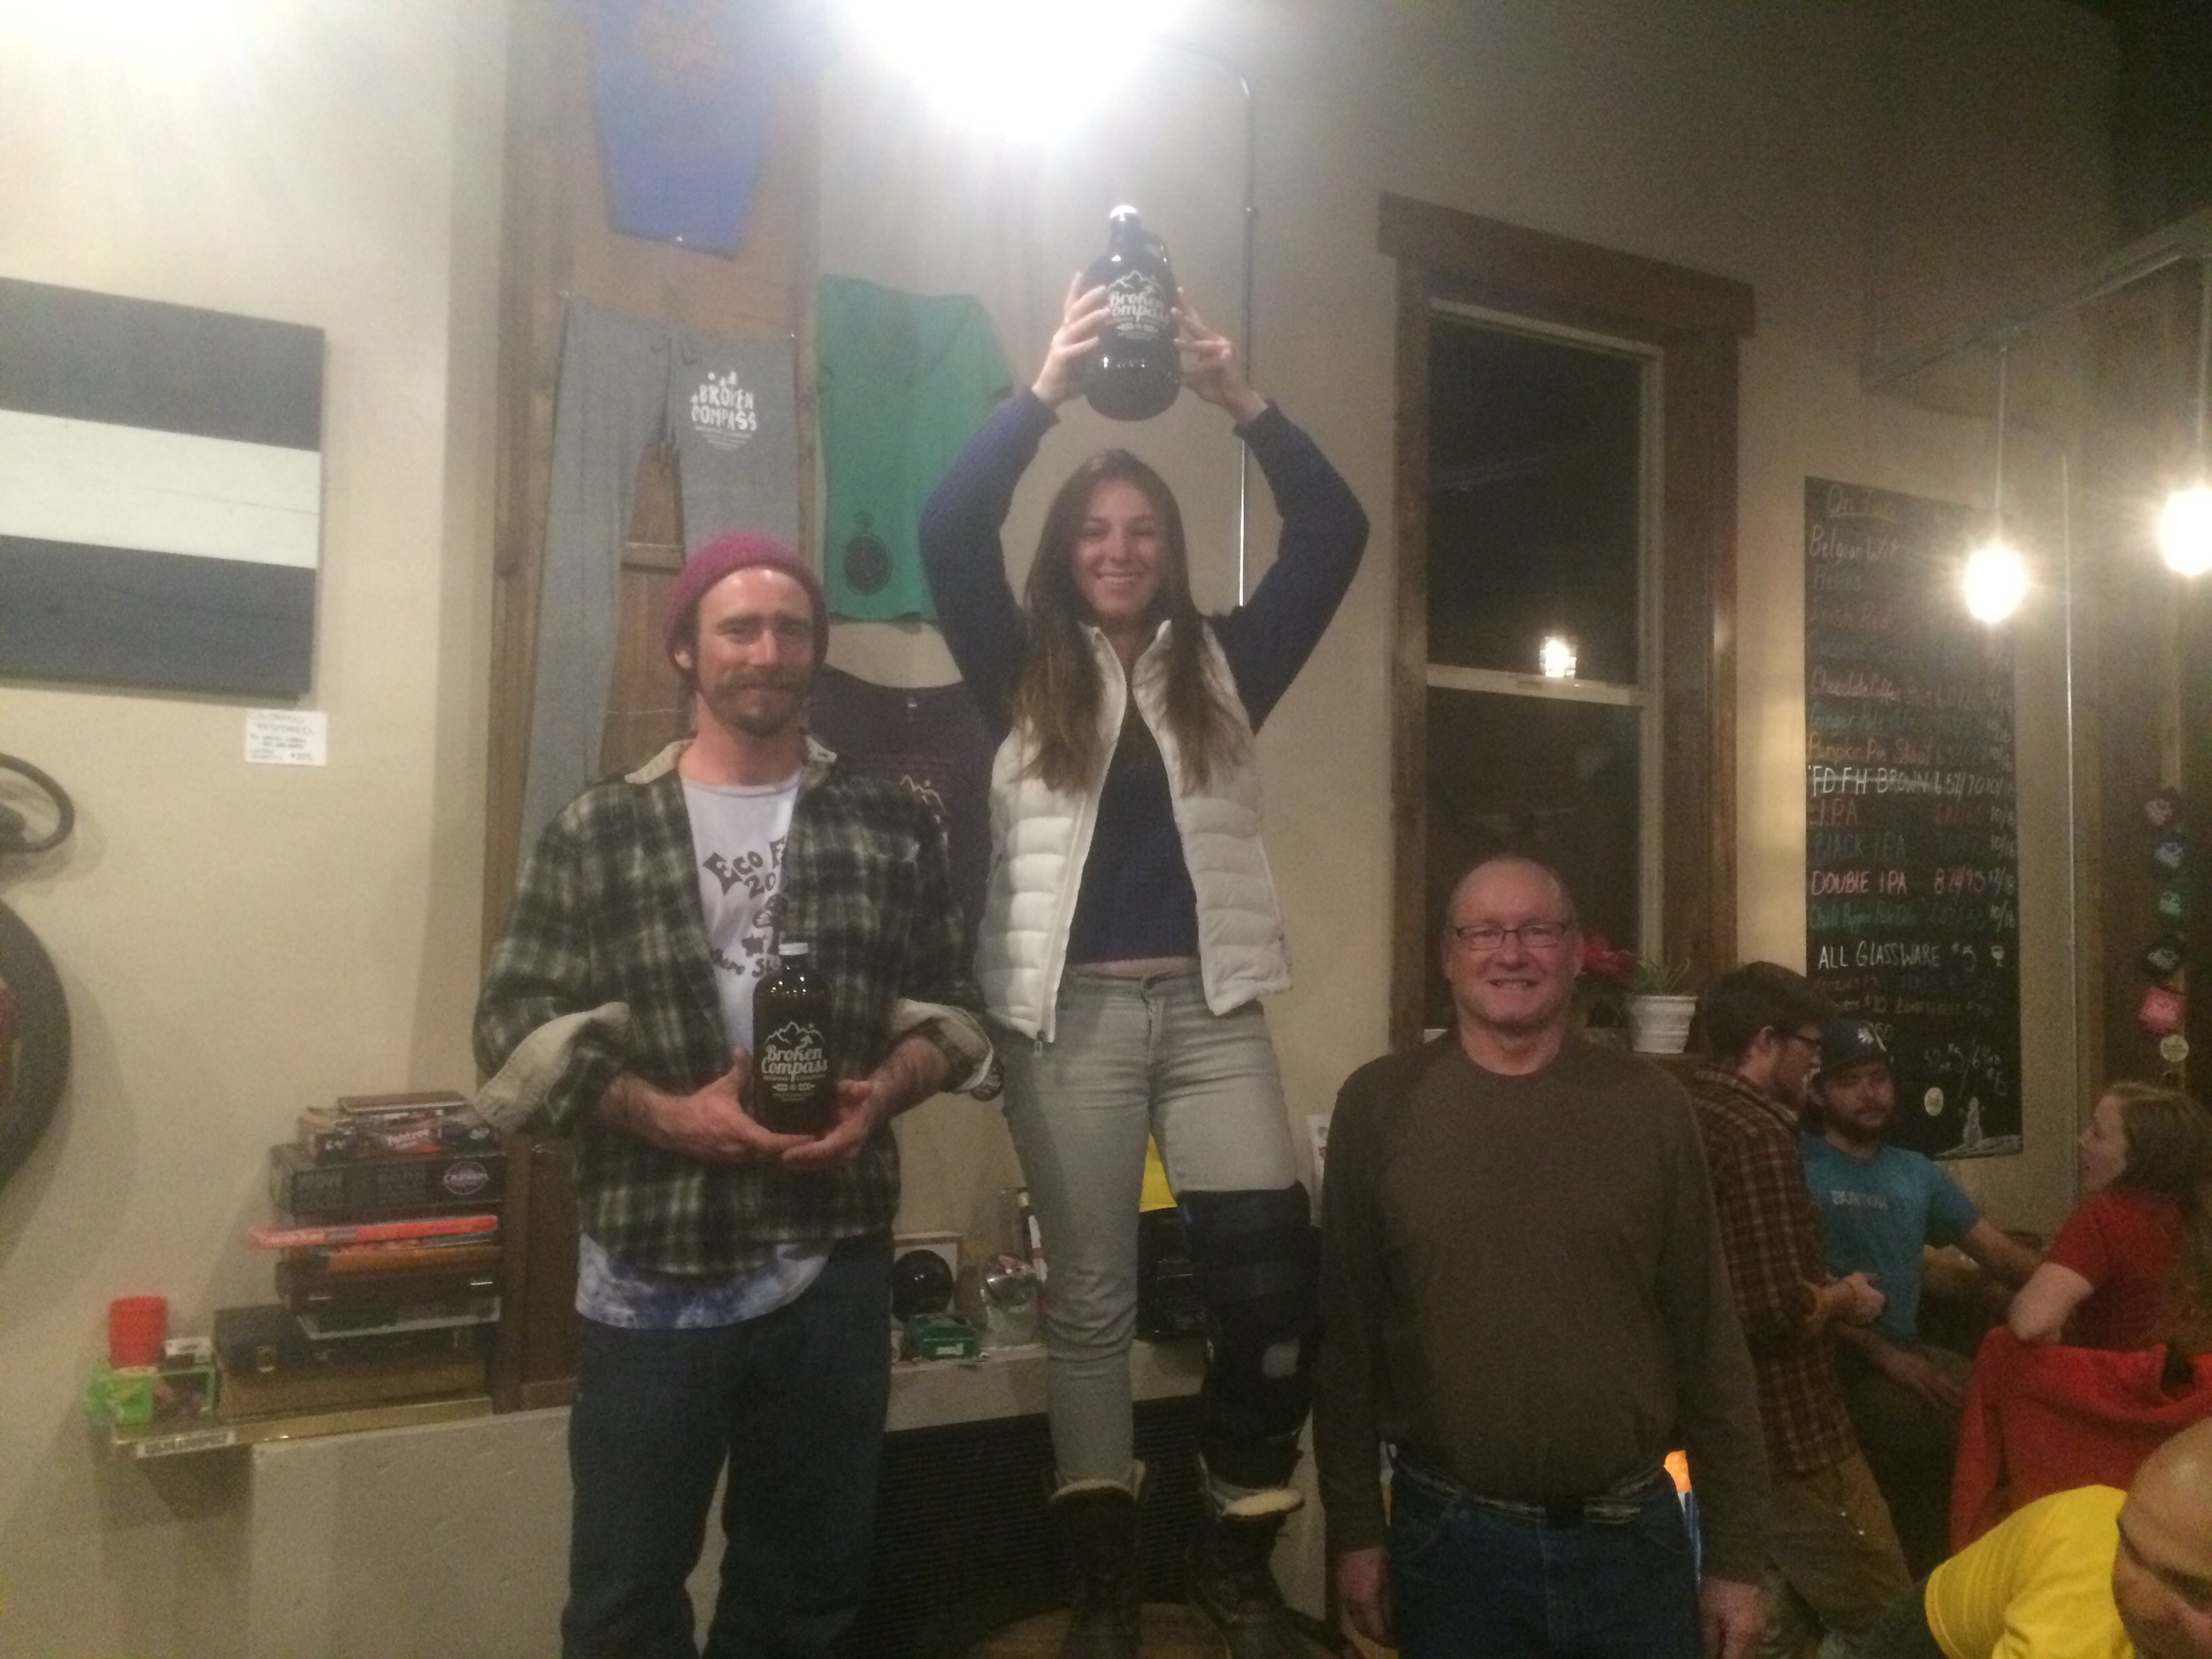 The victorious potluckers: Madeleine (middle), Nick (left) and Brian